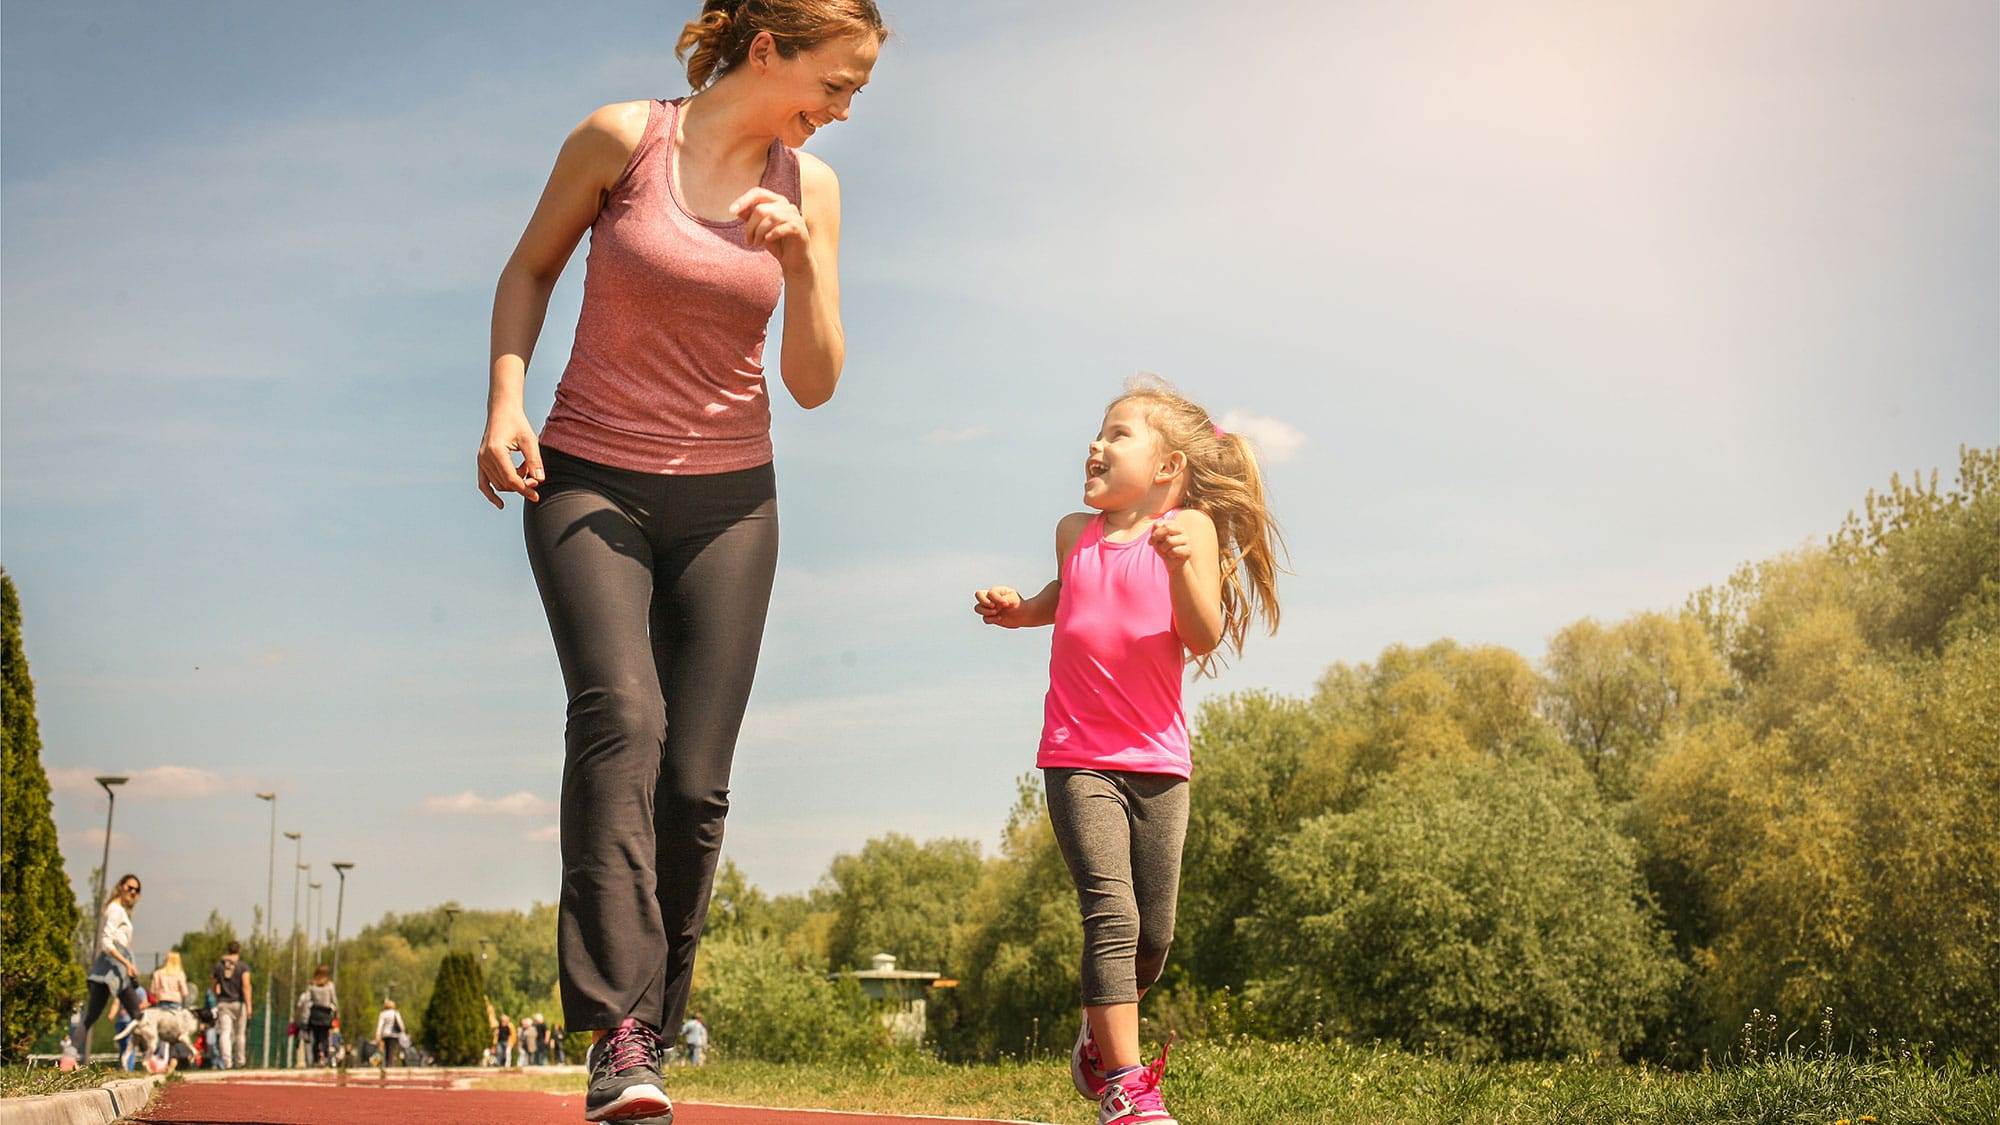 Brits say getting more exercise is the best way they can support NHS